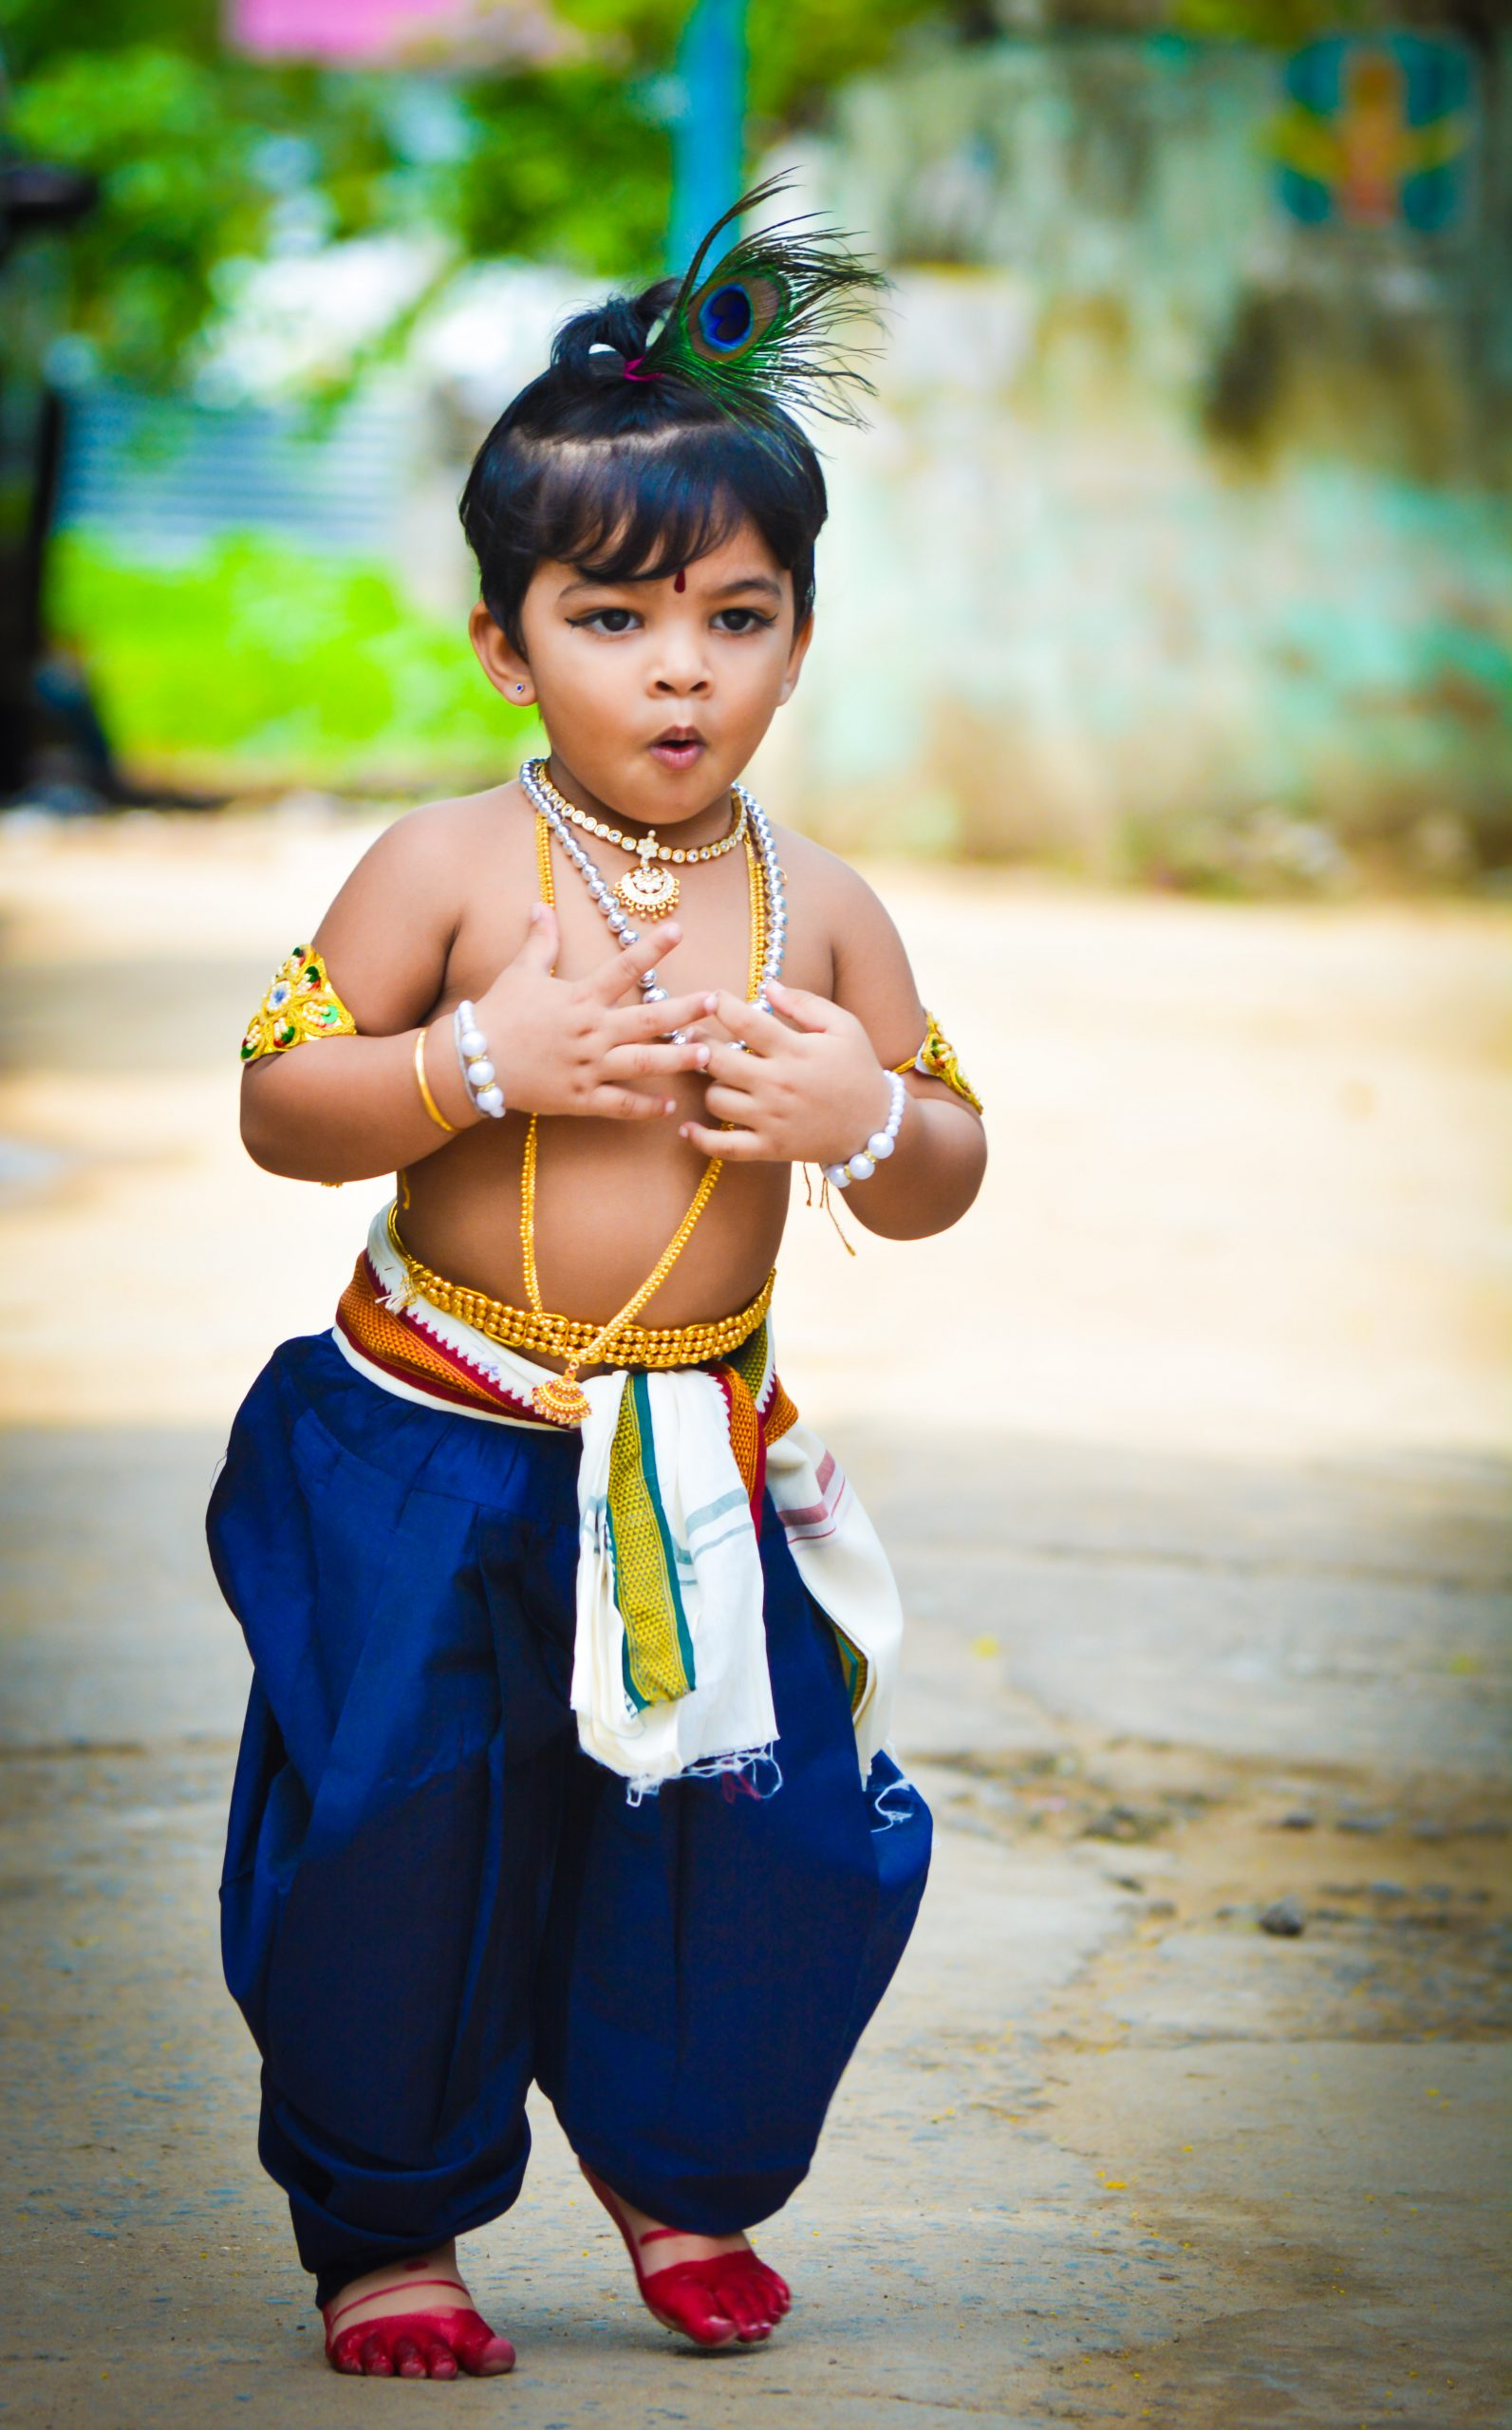 Little baby in Krishna Avtar